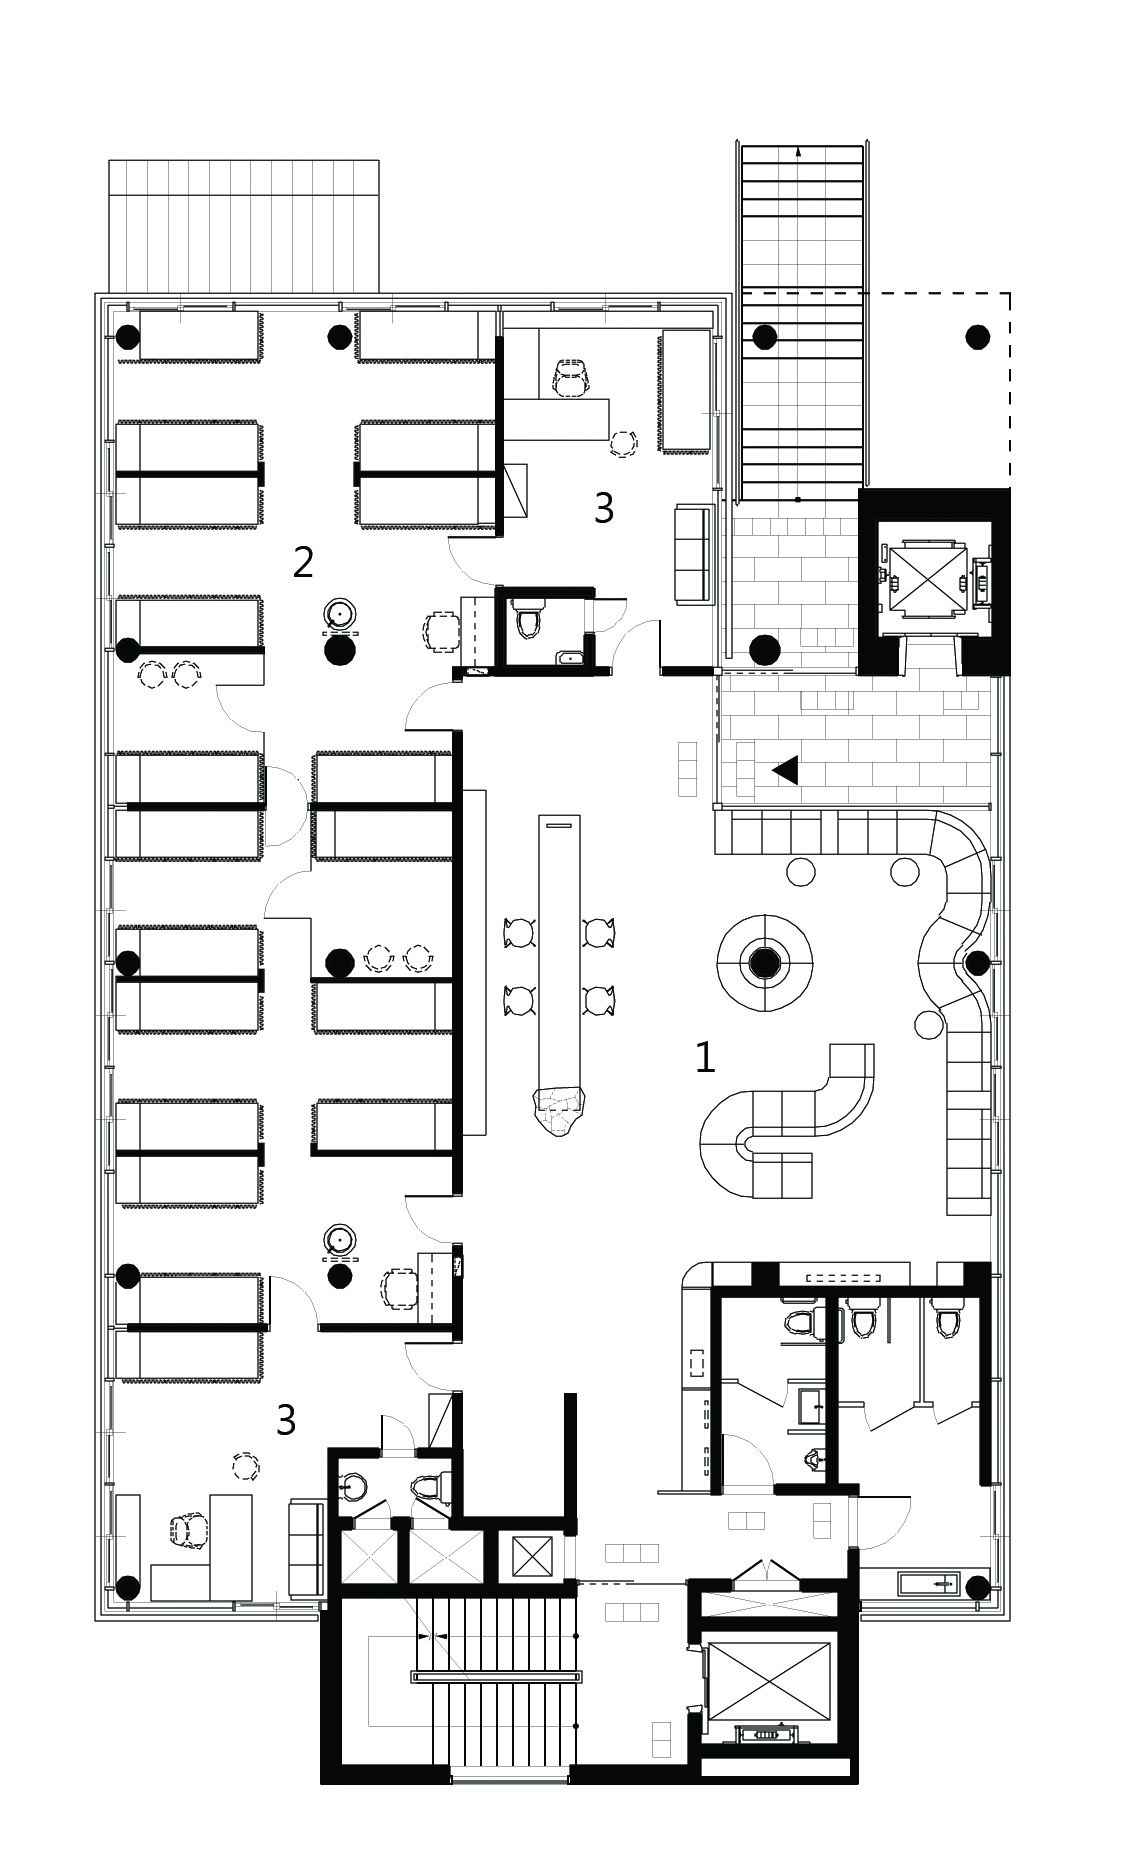 58b34762e58ece2b45000891 Habitat On Terrace Refresh Star Design Floor Plan Level 01 further Rayburn House Office Building Floor Plan moreover 511dcb21b3fc4bd9a2000393 Choonwondang Oriental Clinic Museum Doojin Hwang Architects 2nd Floor Plan in addition Standard Kitchen Layouts Kitchen in addition Ipeco 737 Pilot Seat. on office layout